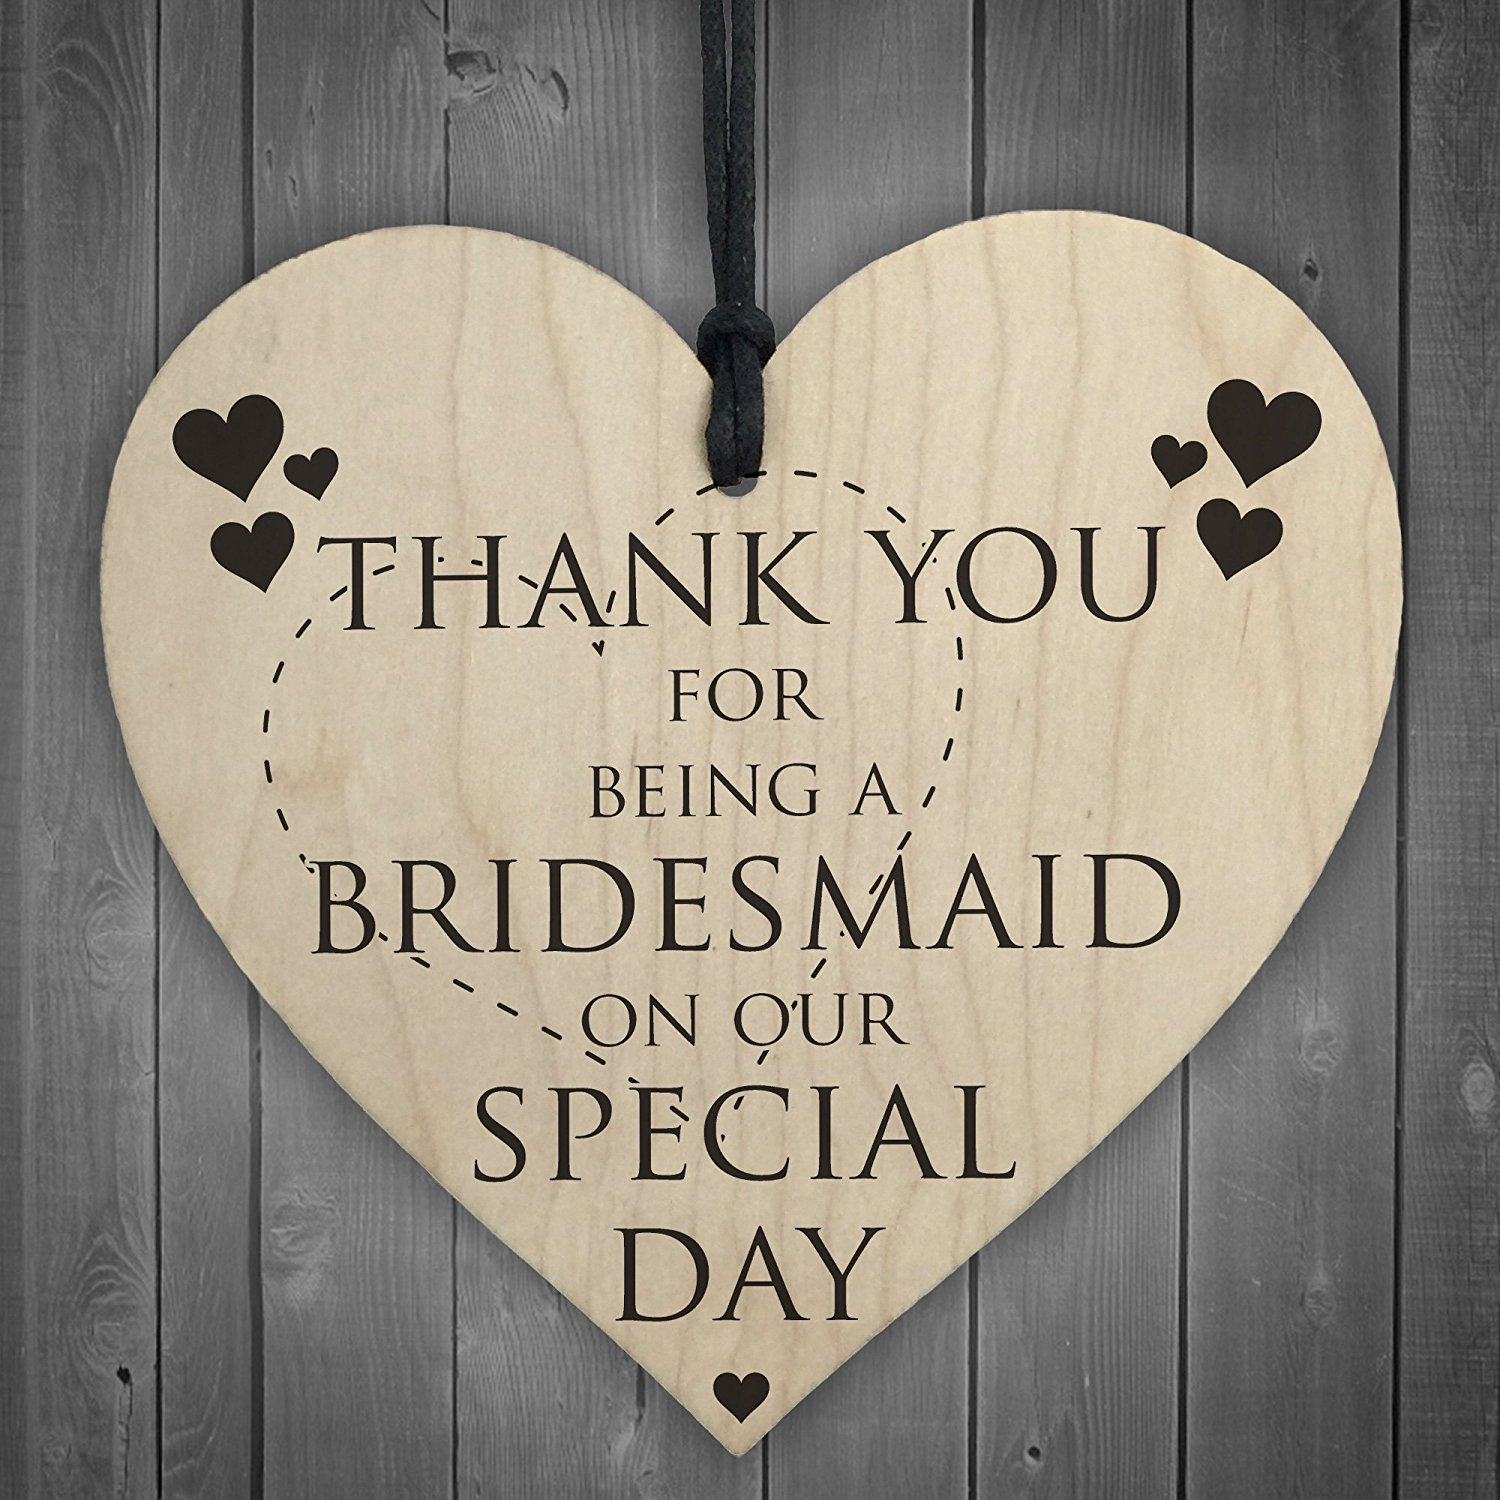 Thank You For Being a Bridesmaid Heart